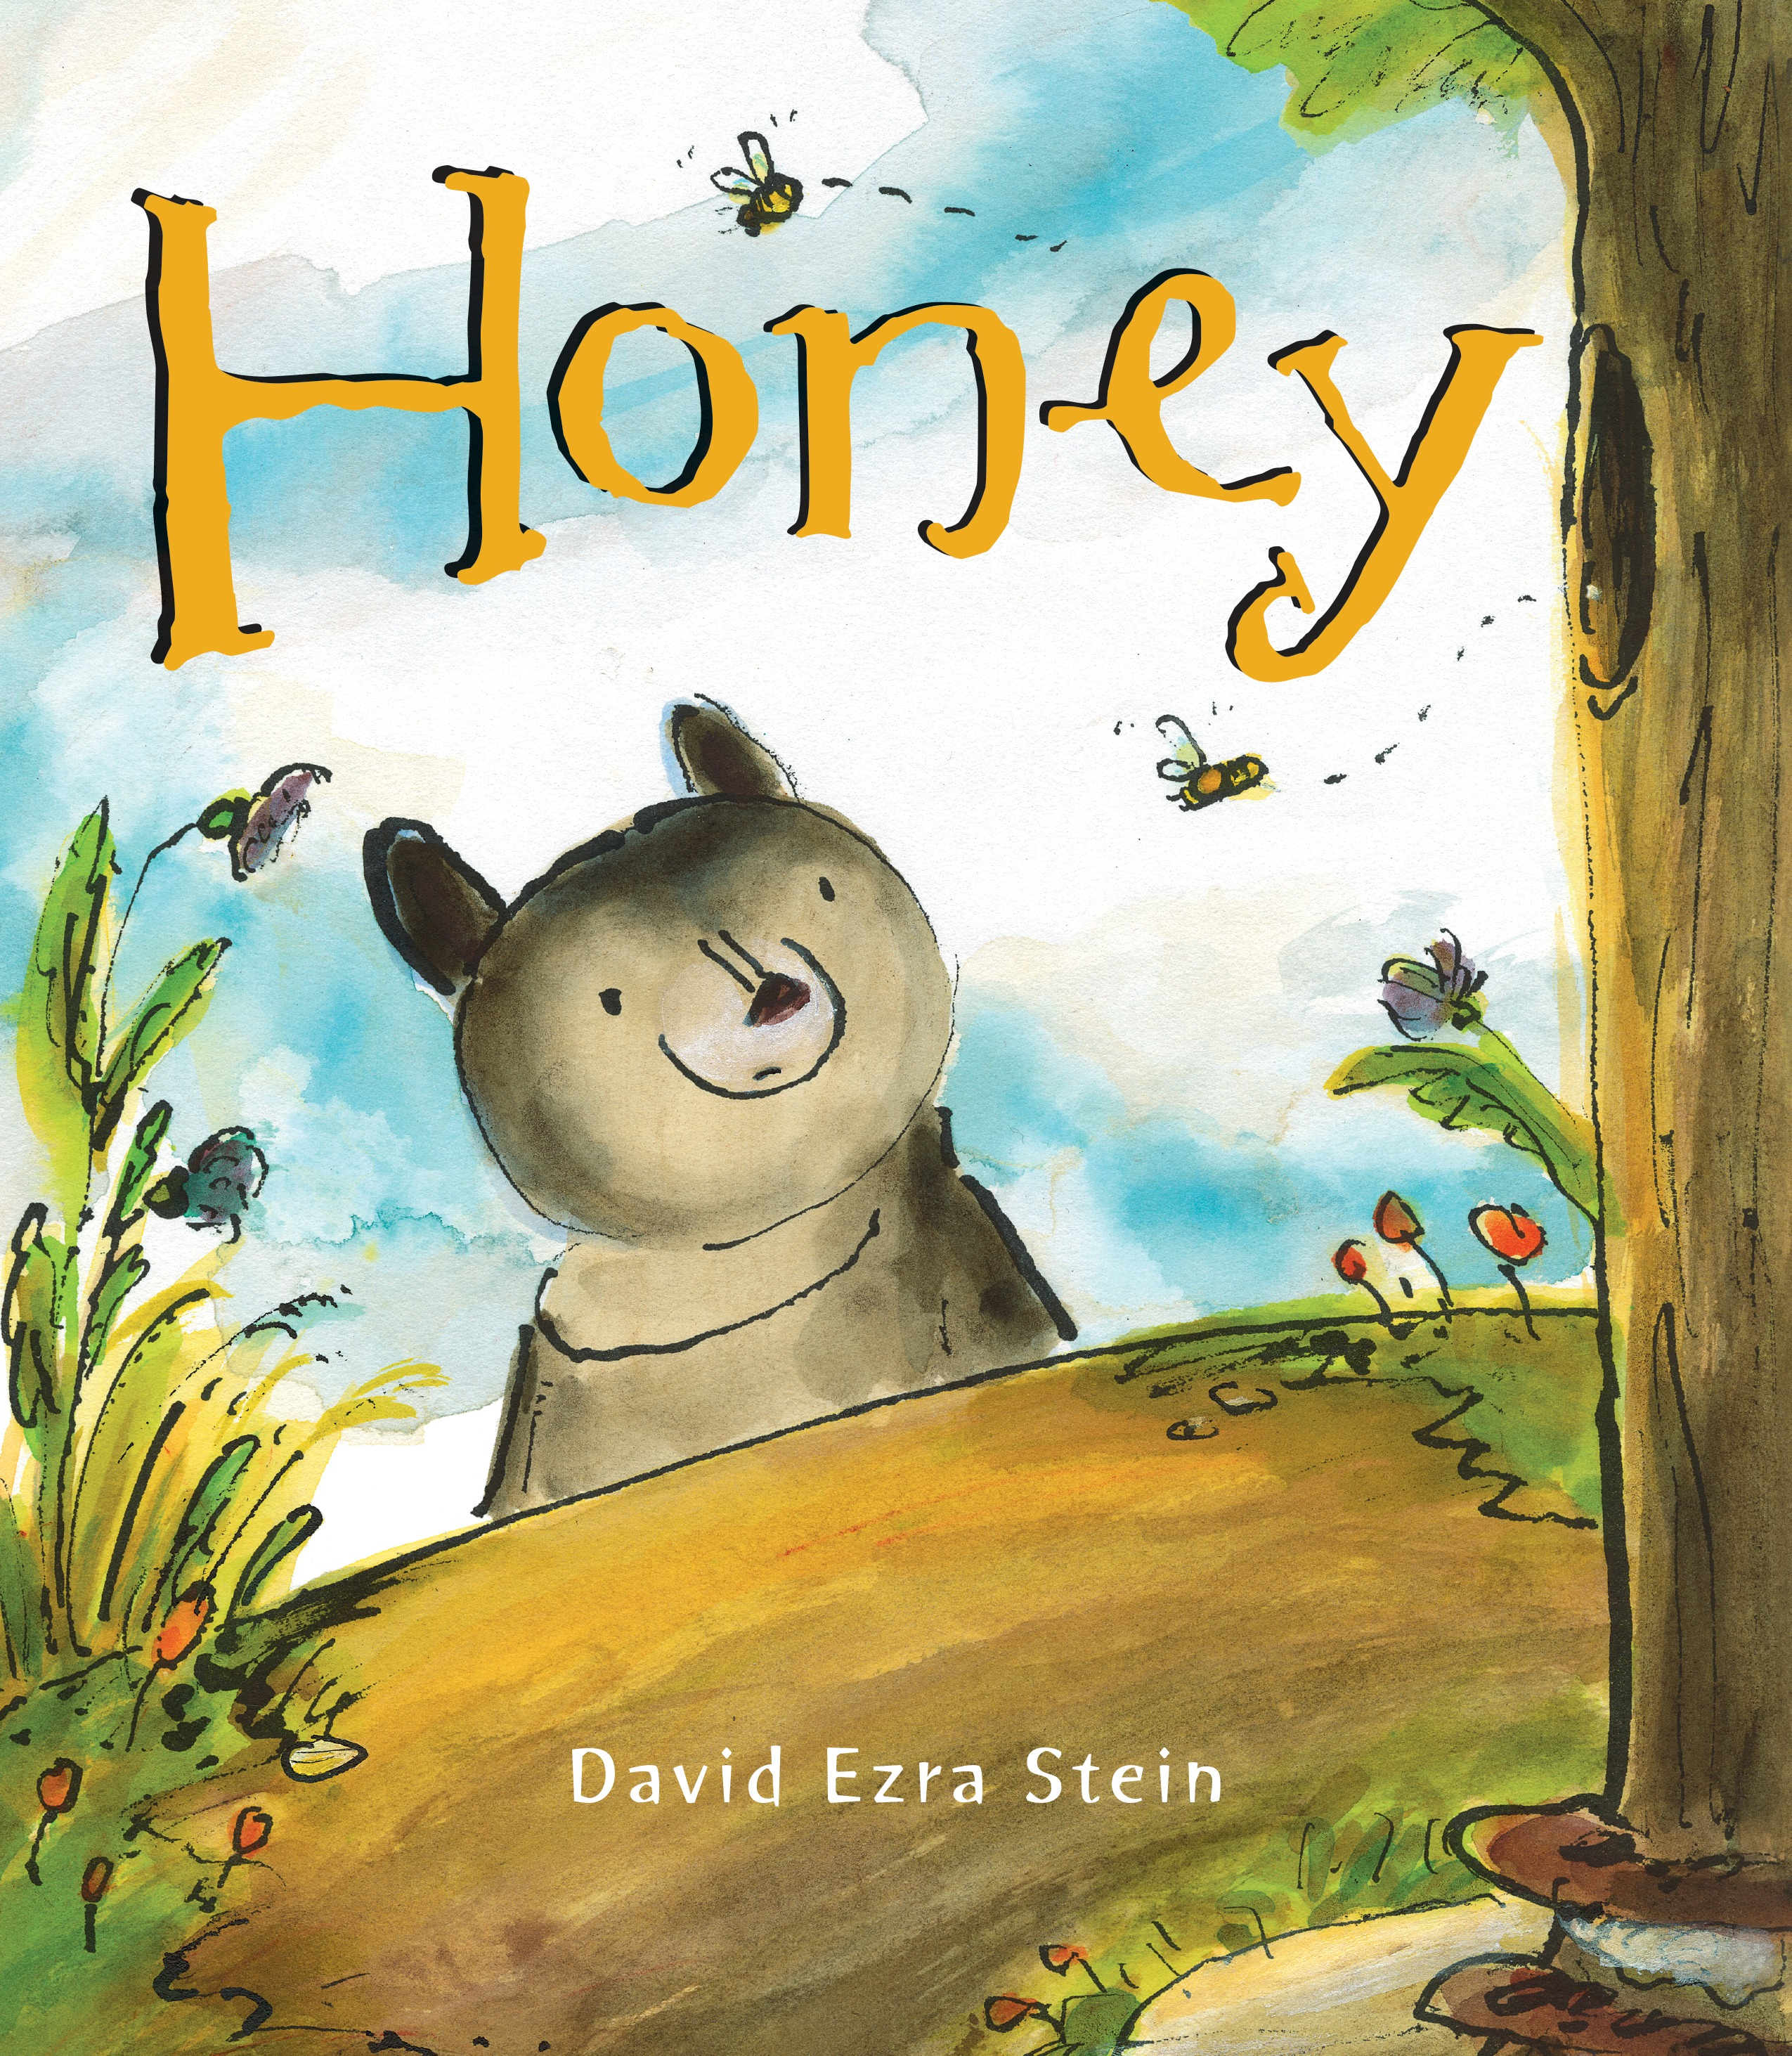 Sunday Story Time with David Ezra Stein (Author & Illustrator of Honey)